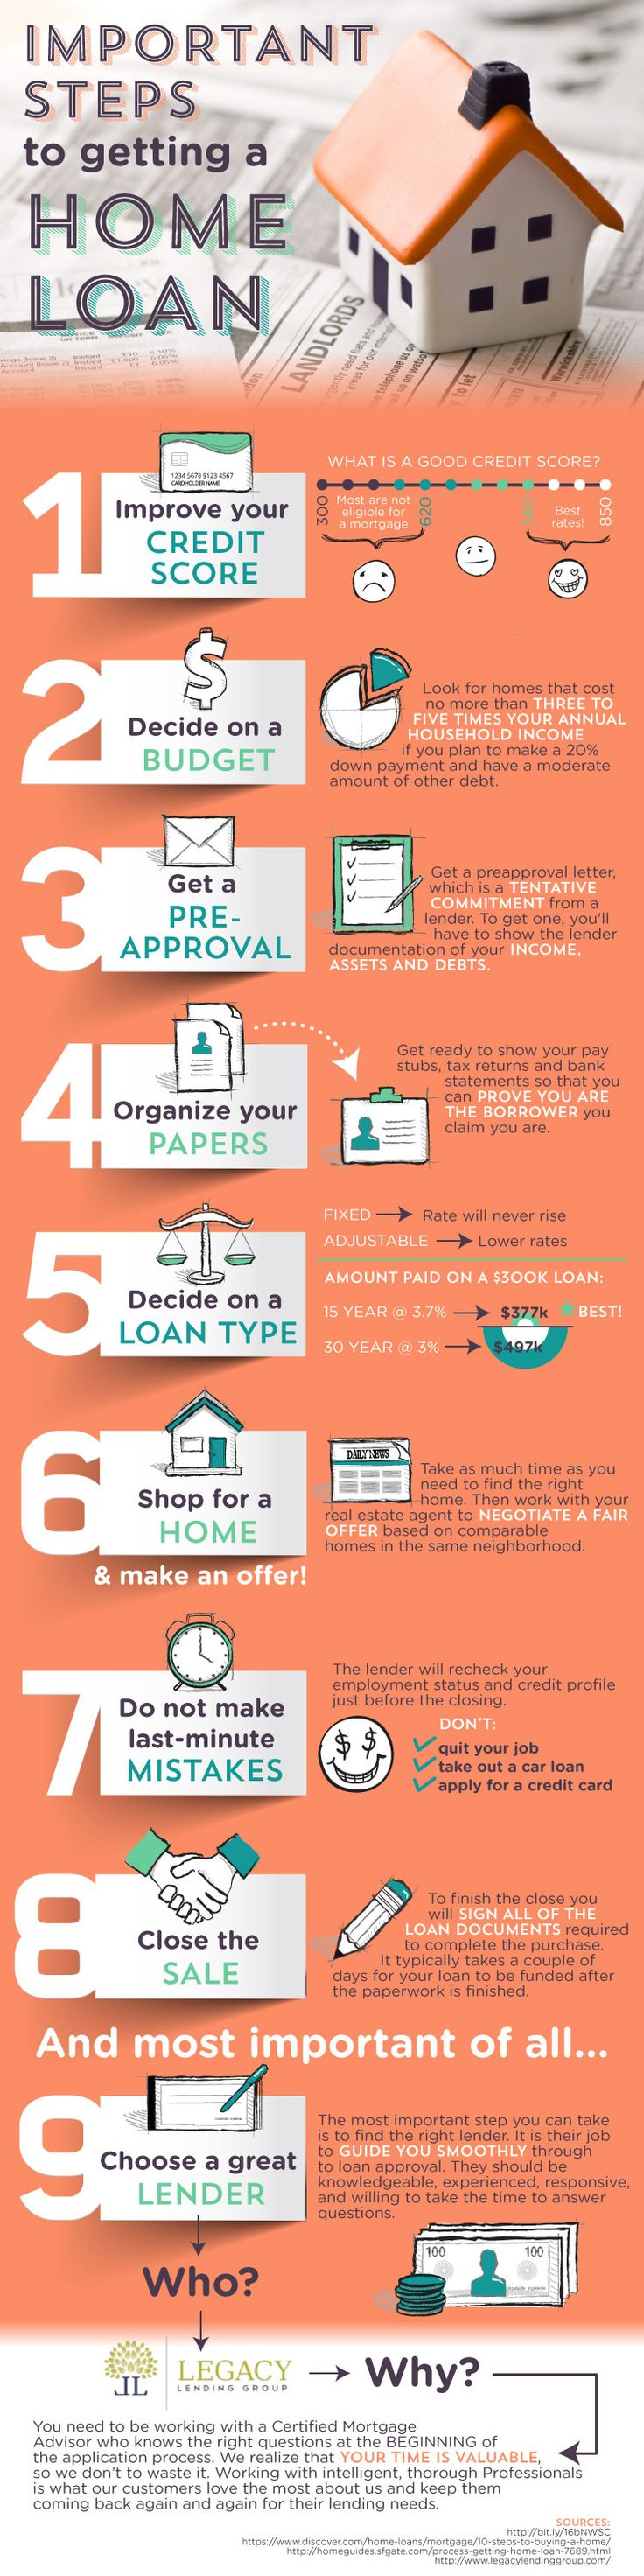 Applying for a home loan? Remember these important steps. #mortgage #mortgageloan #realestate